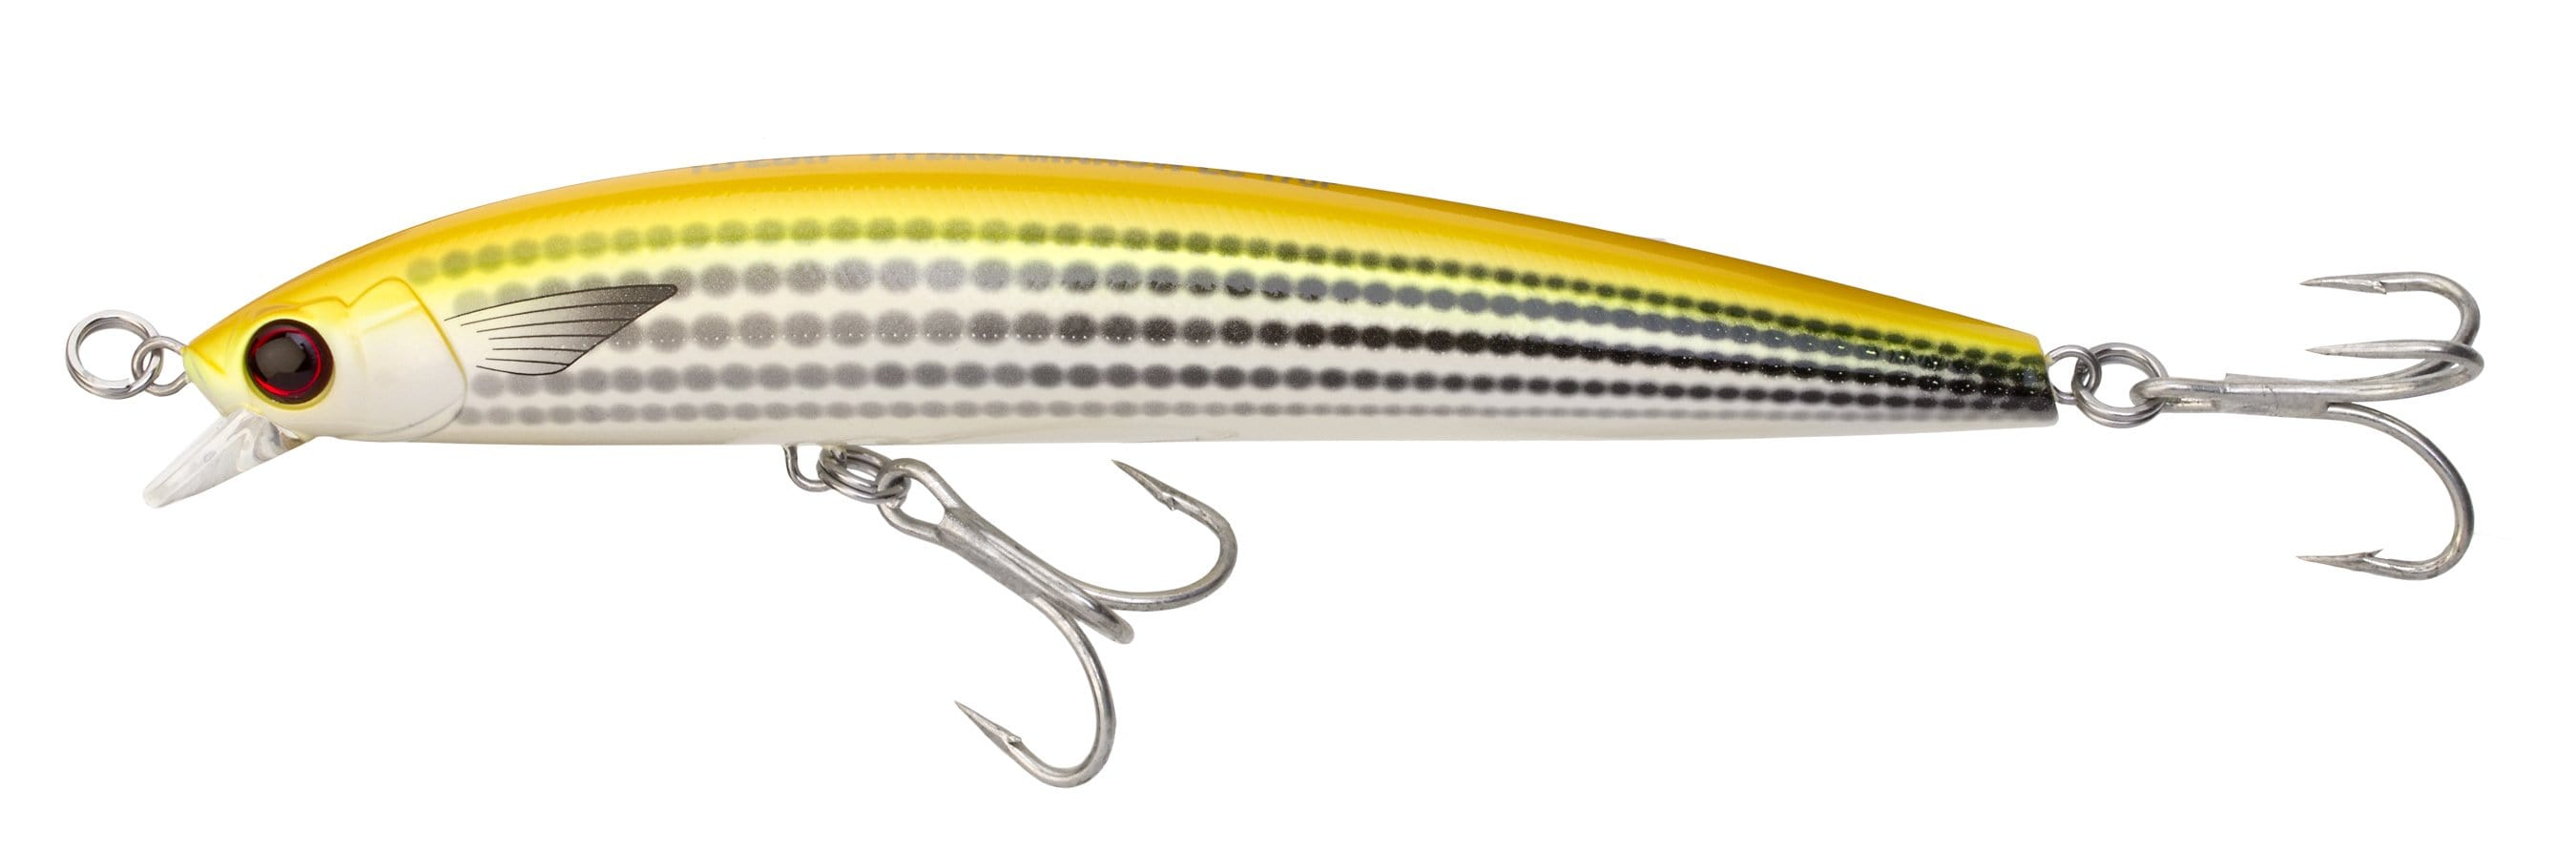 Yo-Zuri Hydro Minnow LC Chicken Scratch